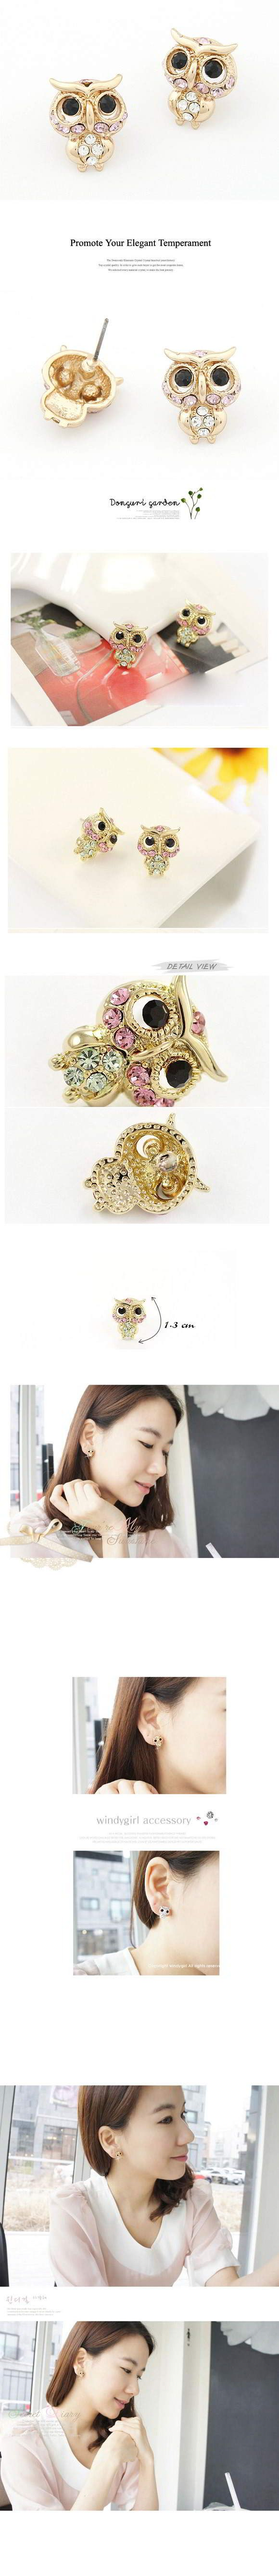 Korean Exquisite Fashion OWL Decorated With CZ Diamond Studs Earrings General.  Fashionable with passion REPIN if you like it.😊 Only 38.5 IDR